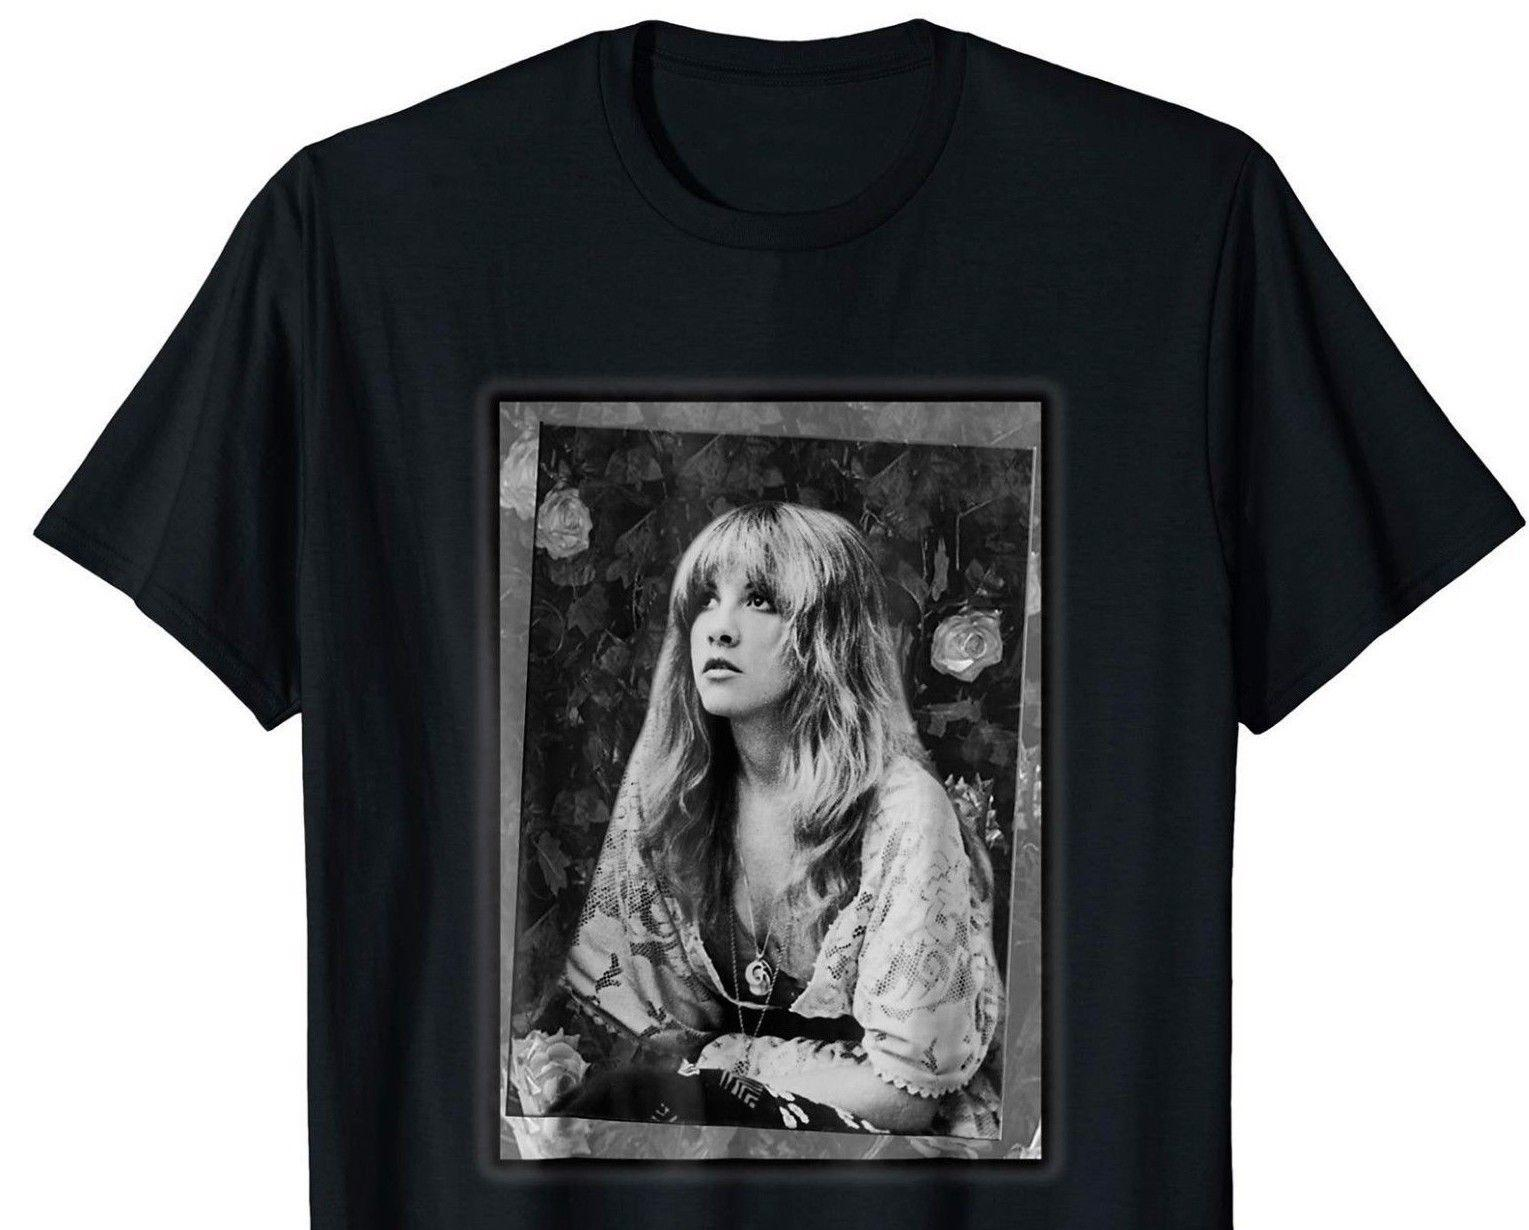 0dc972ea Stevie Singer Nick T Shirt Black Full Size For Stevie Nicks Shirt S ...